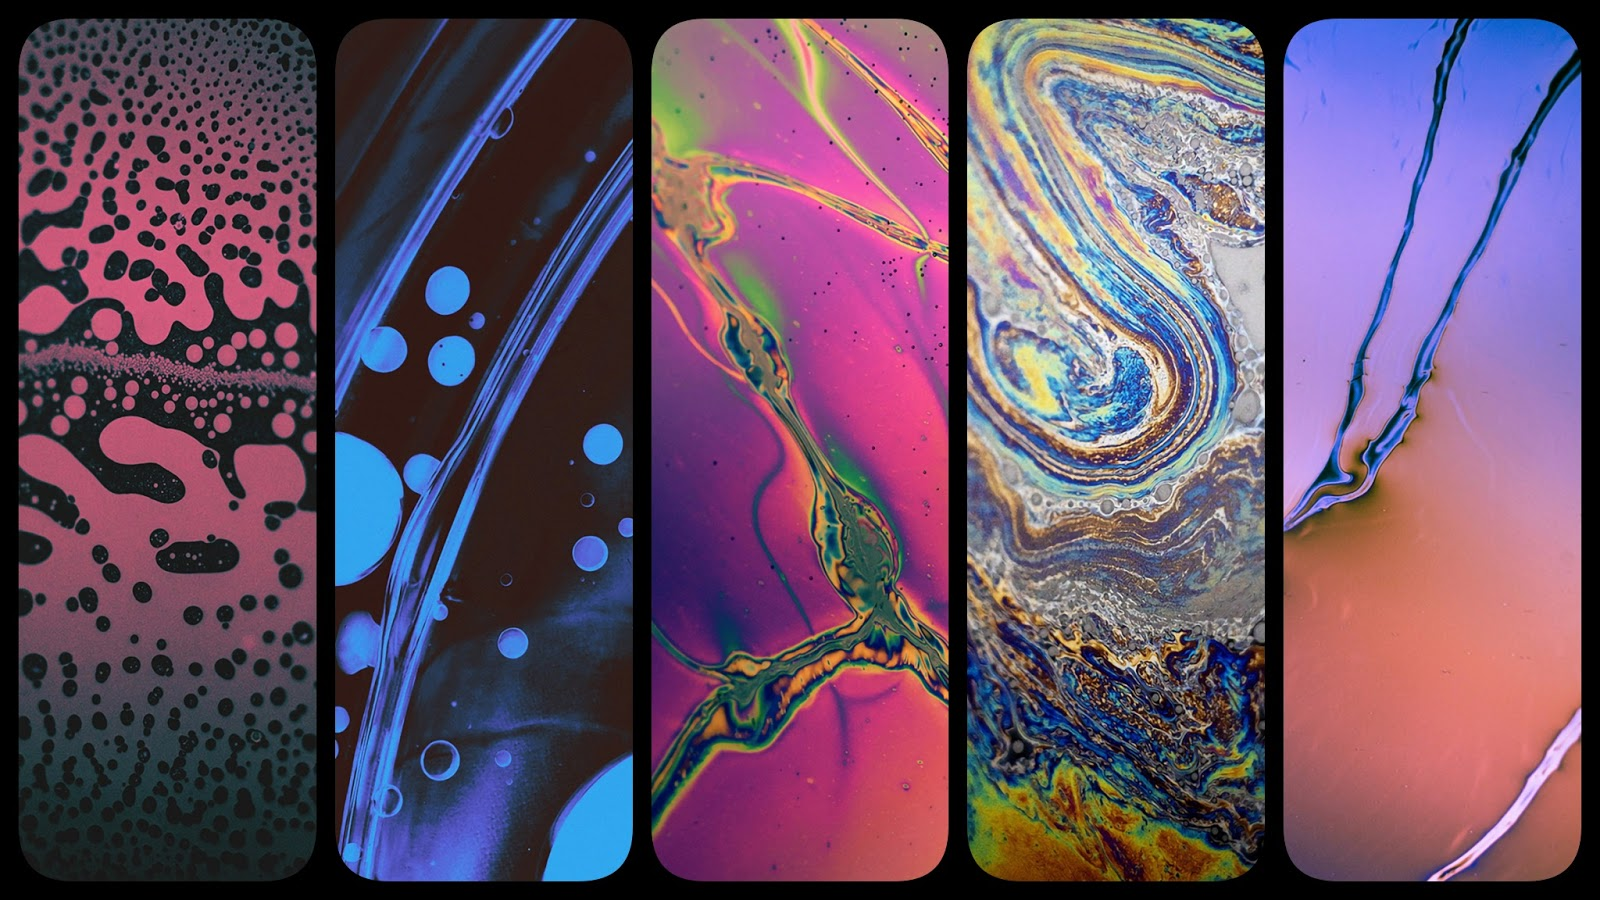 New abstract phone wallpapers 720p